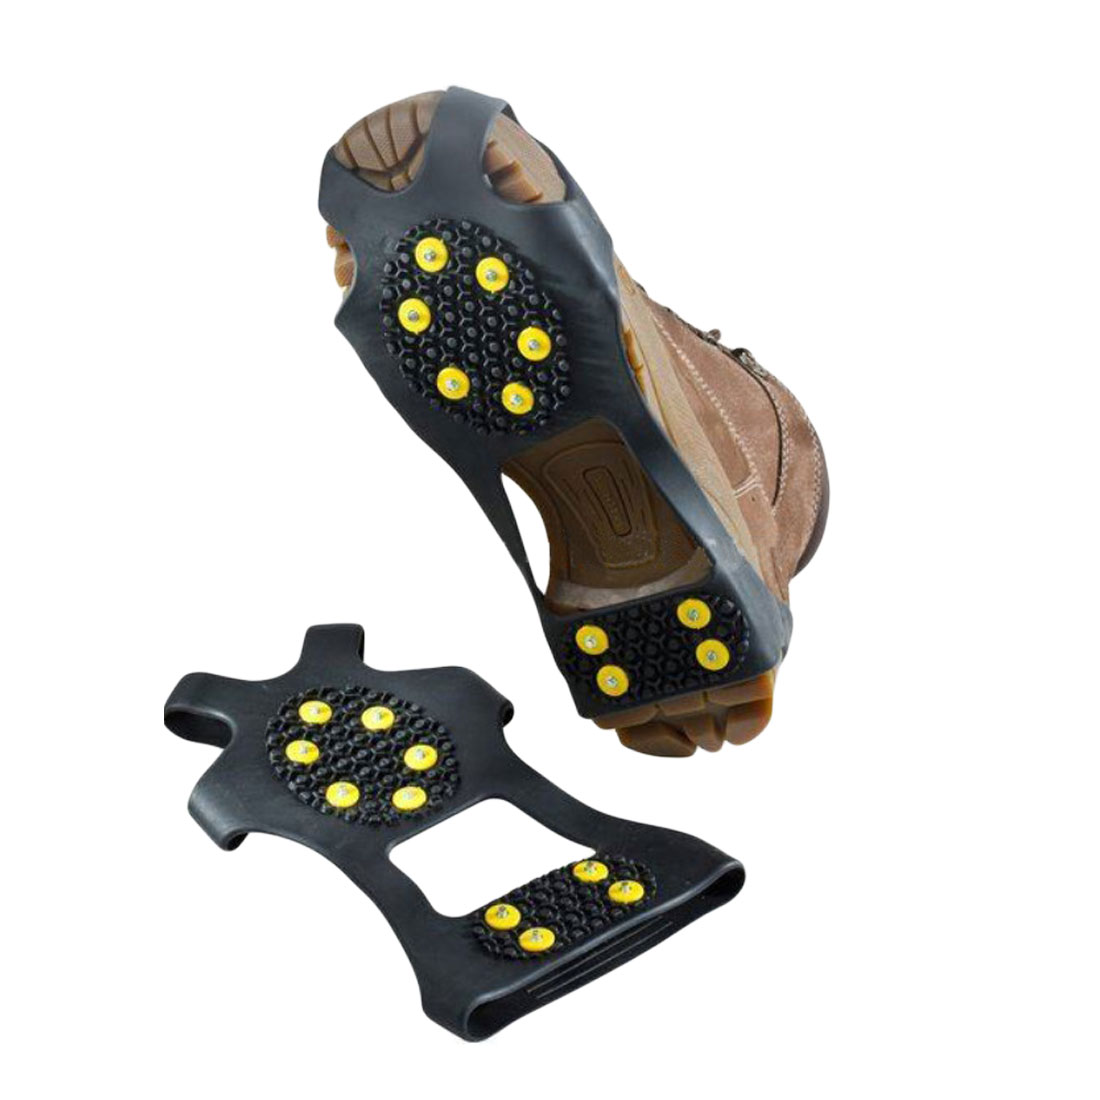 3 Size 10 Studs Anti-Skid Ice Winter Climbing Non-Slip Snow Shoes Spikes Grips Cleats Over Shoes Covers Crampons Snowboard Shoes